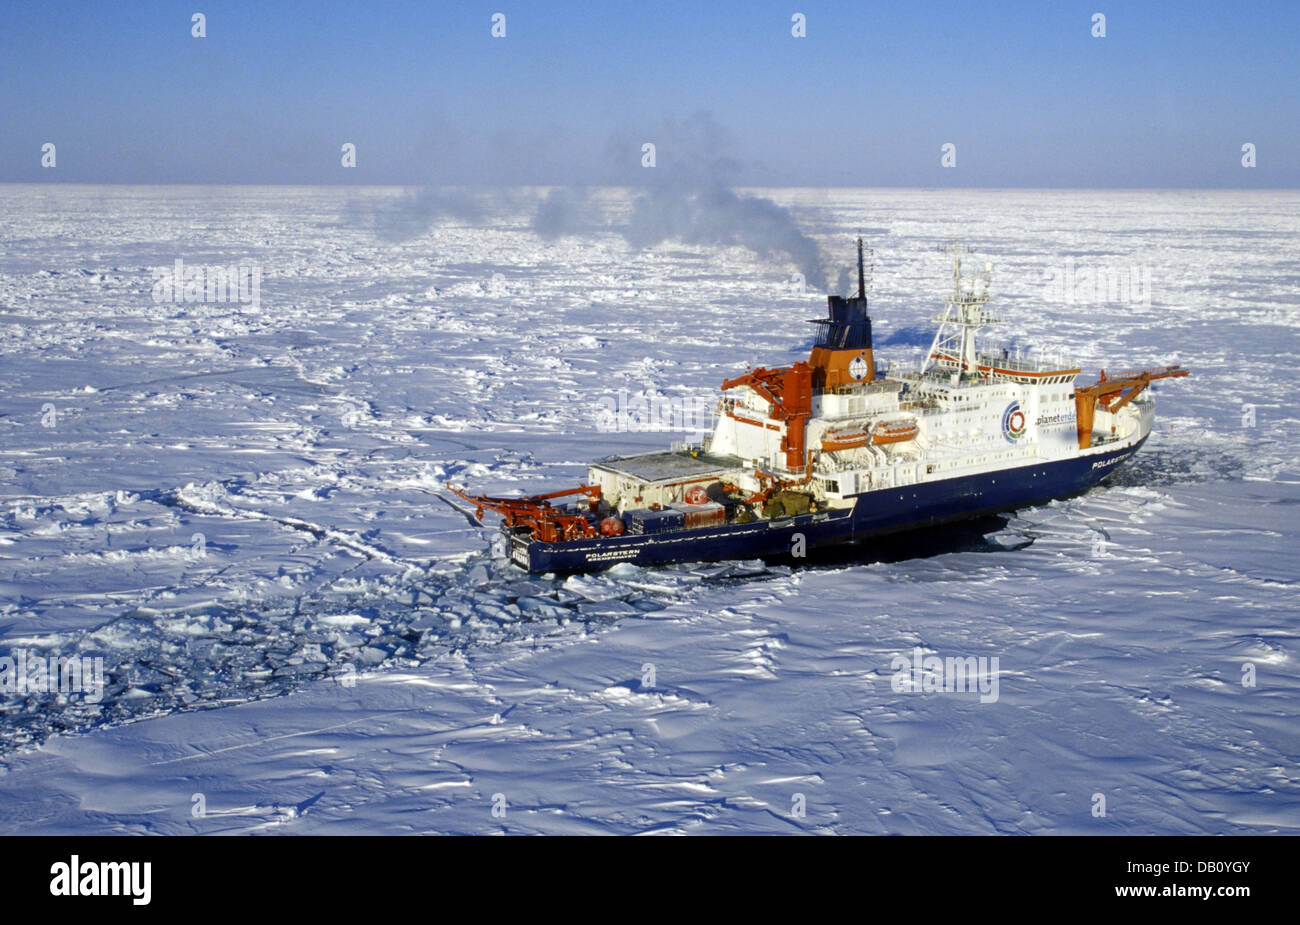 The German research ship 'Polarstern' (meaning pole star) crushes the ice as it works its way through the - Stock Image